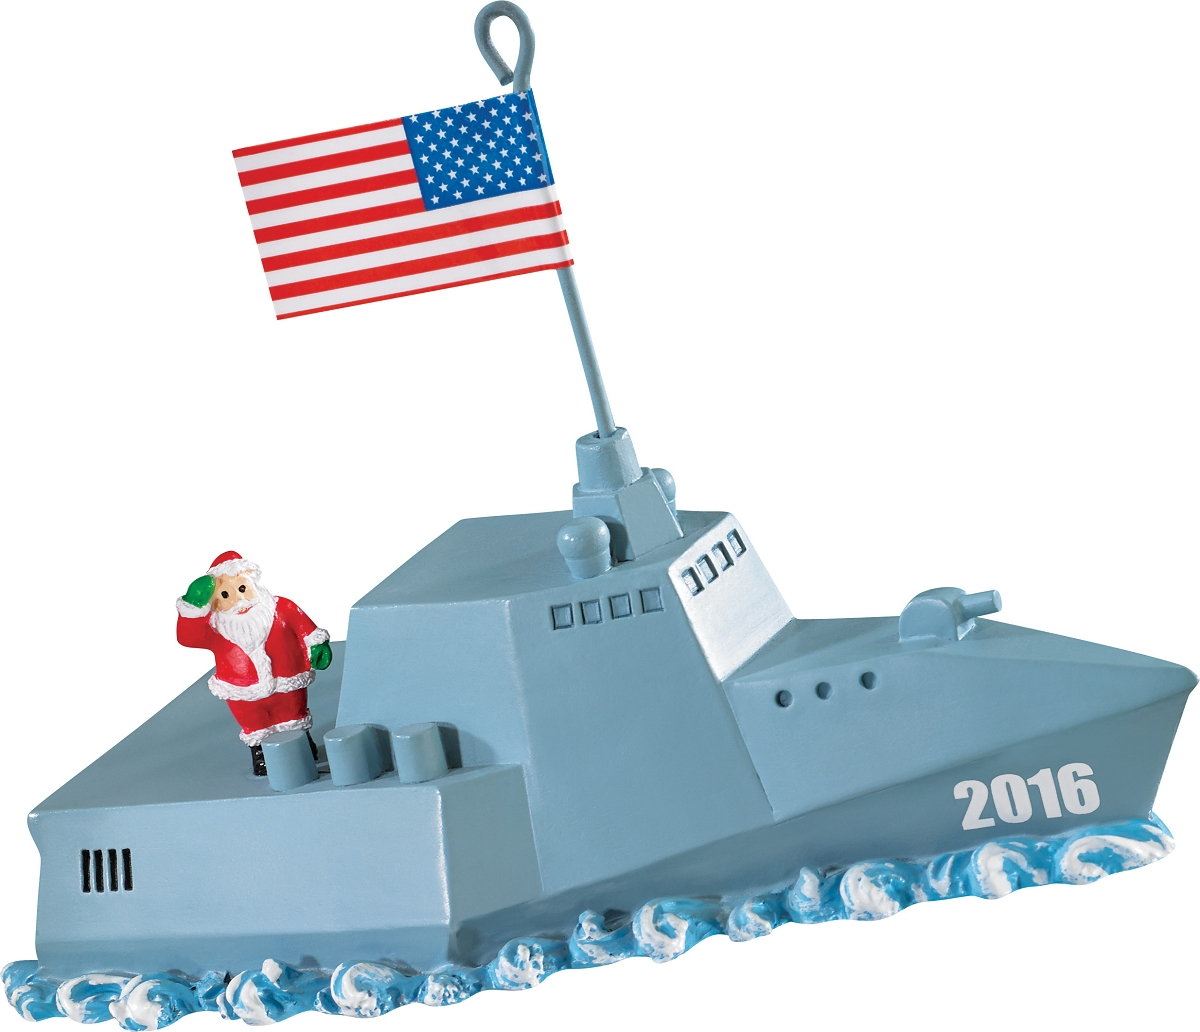 2016 navy santa carlton ornament from american greetings at hooked 2016 navy santa carlton ornament from american greetings at hooked on ornaments m4hsunfo Image collections